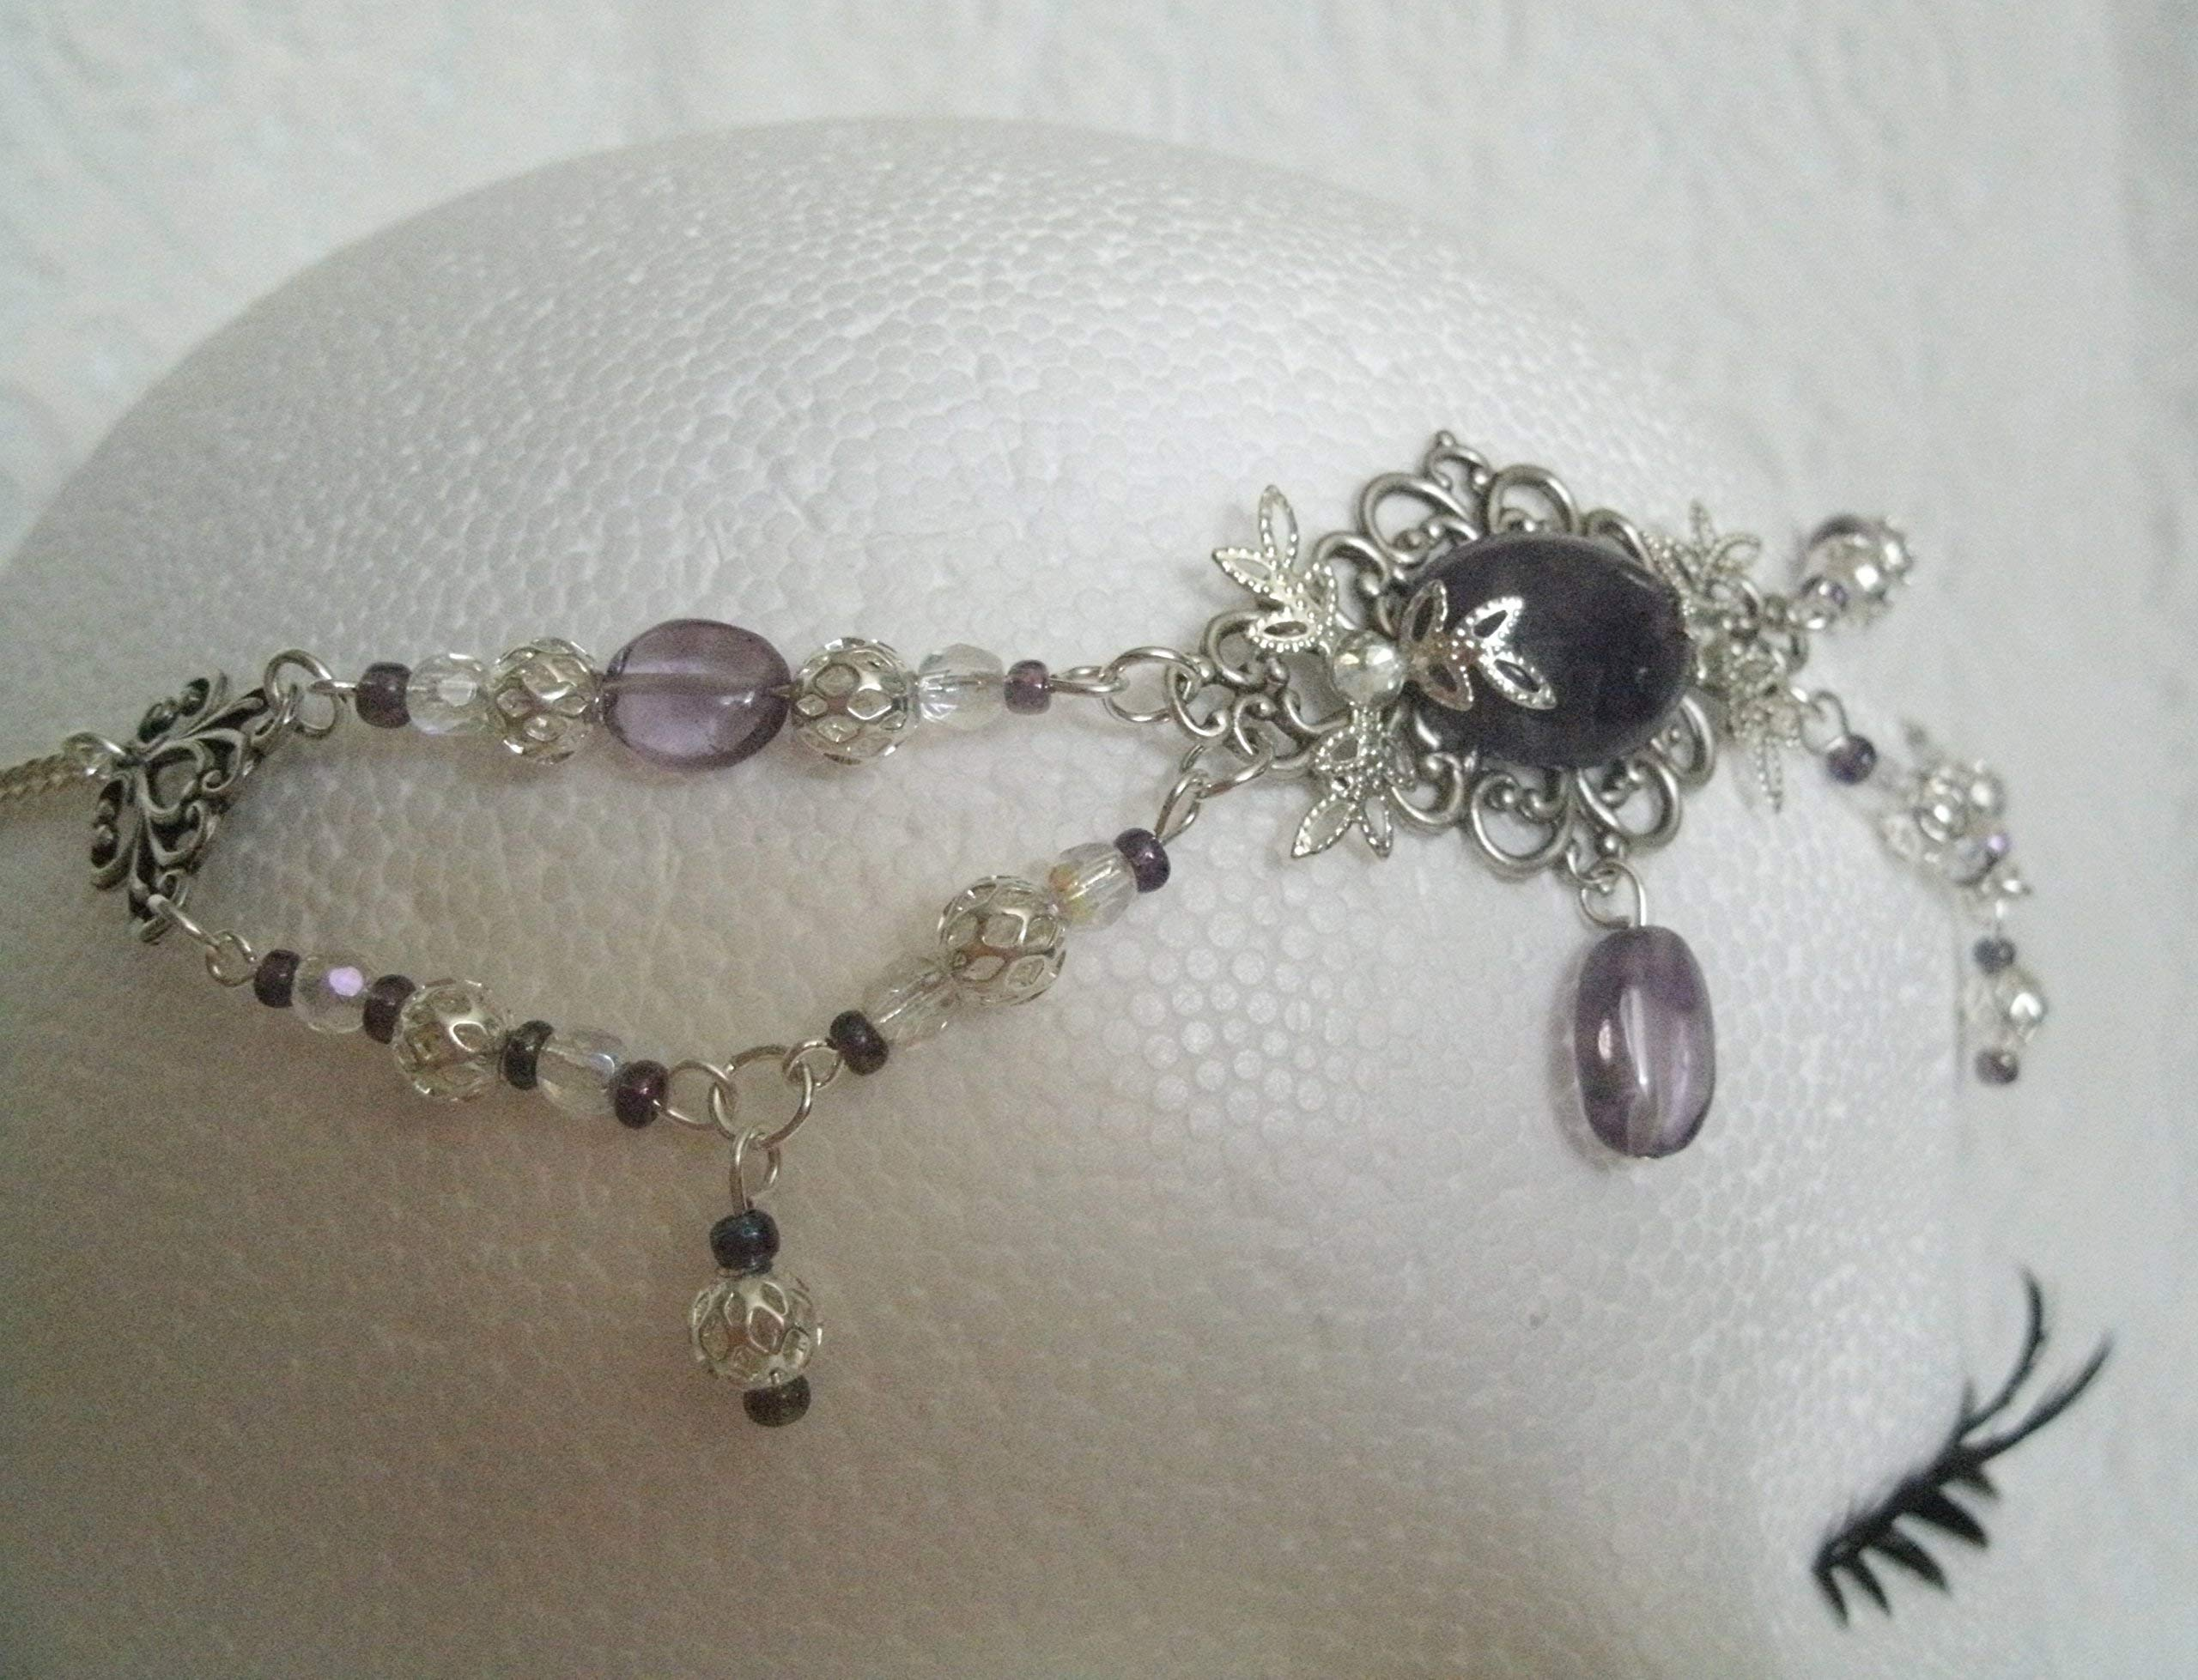 Amethyst Circlet handmade jewelry wiccan pagan wicca witch goddess headpiece renaissance medieval